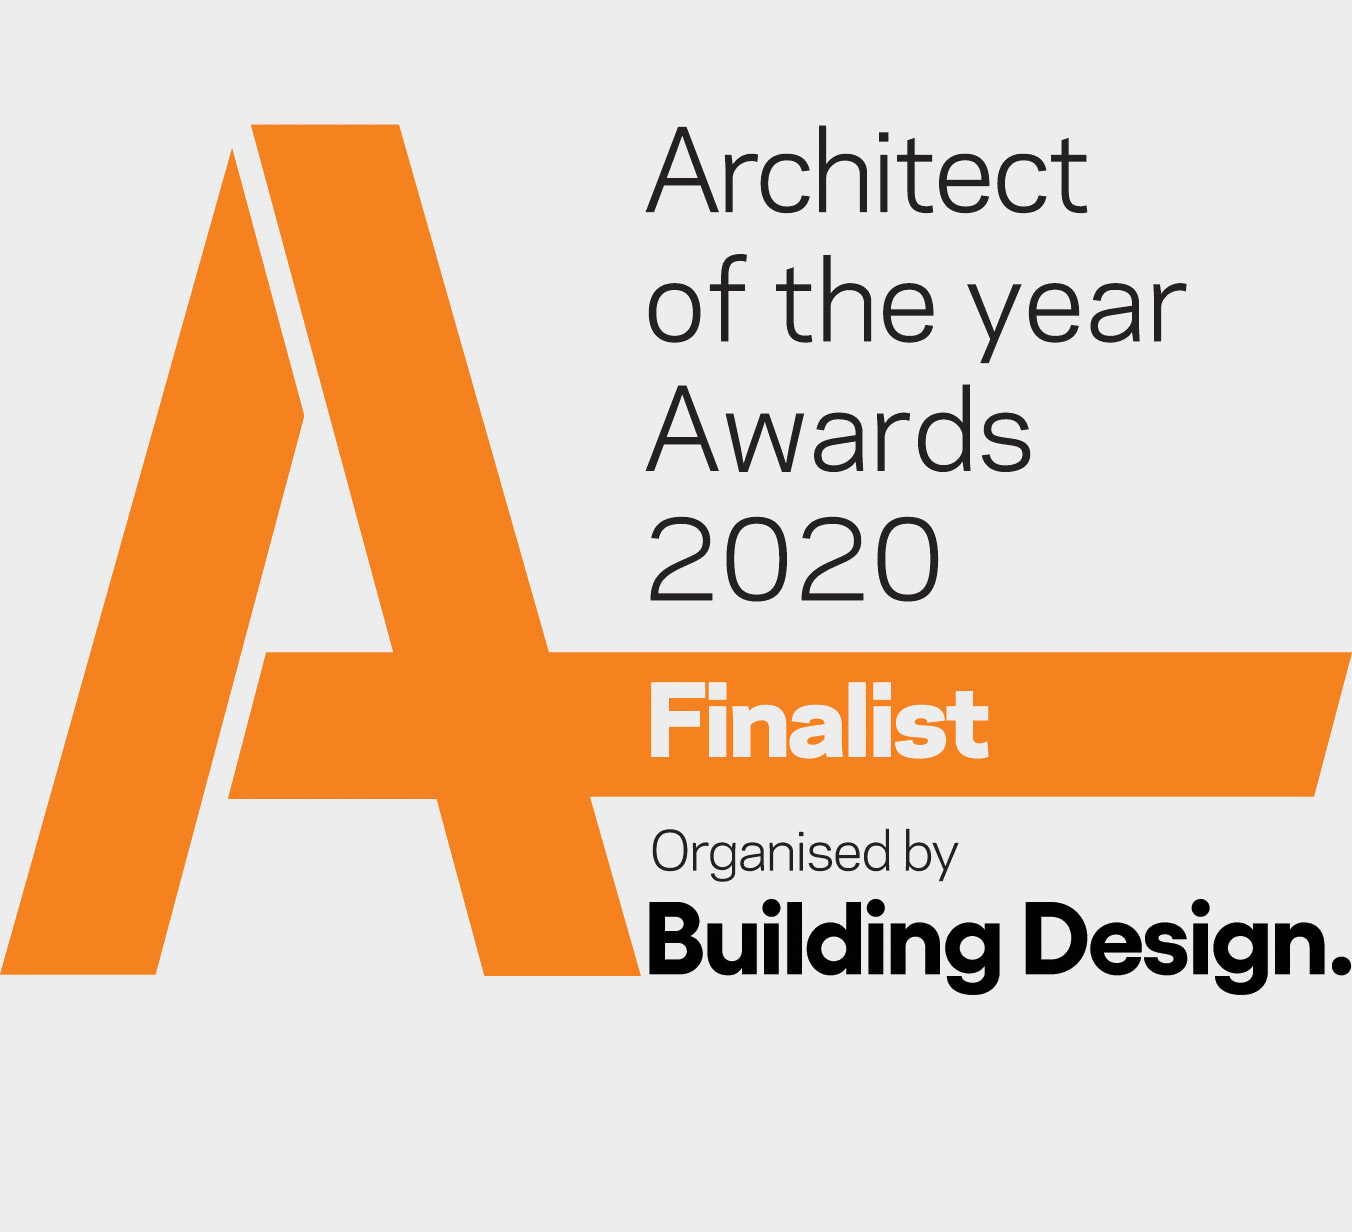 Public Building Architects of the Year finalists